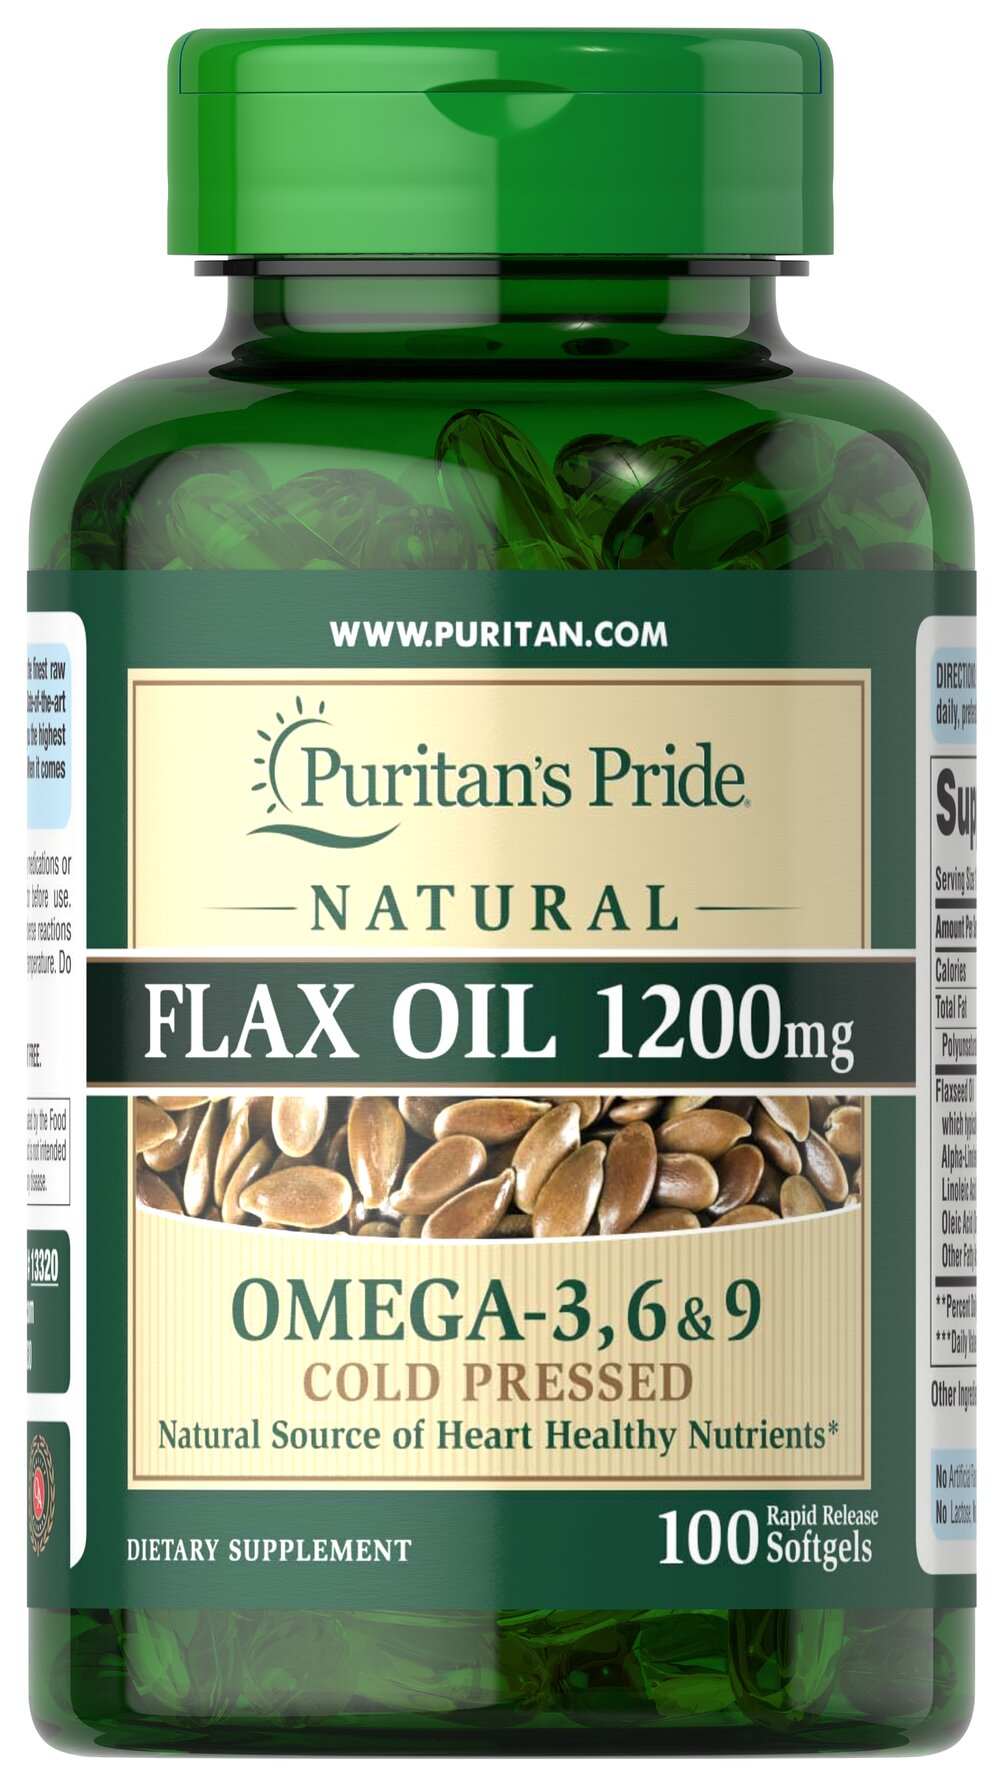 Natural Flax Oil 1200 mg <p>Flaxseed — one of the most concentrated vegetarian source of <strong>Omega-3 fatty acids</strong> found in nature — contributes to heart and while providing an energy source for the body.** Our high-quality natural <strong>Flaxseed Oil</strong> is dispensed and processed without solvents, under a nitrogen blanket and special yellow lights, then encased in a protective amber-colored gelatin shell to retain its integrity.</p> 100 Soft